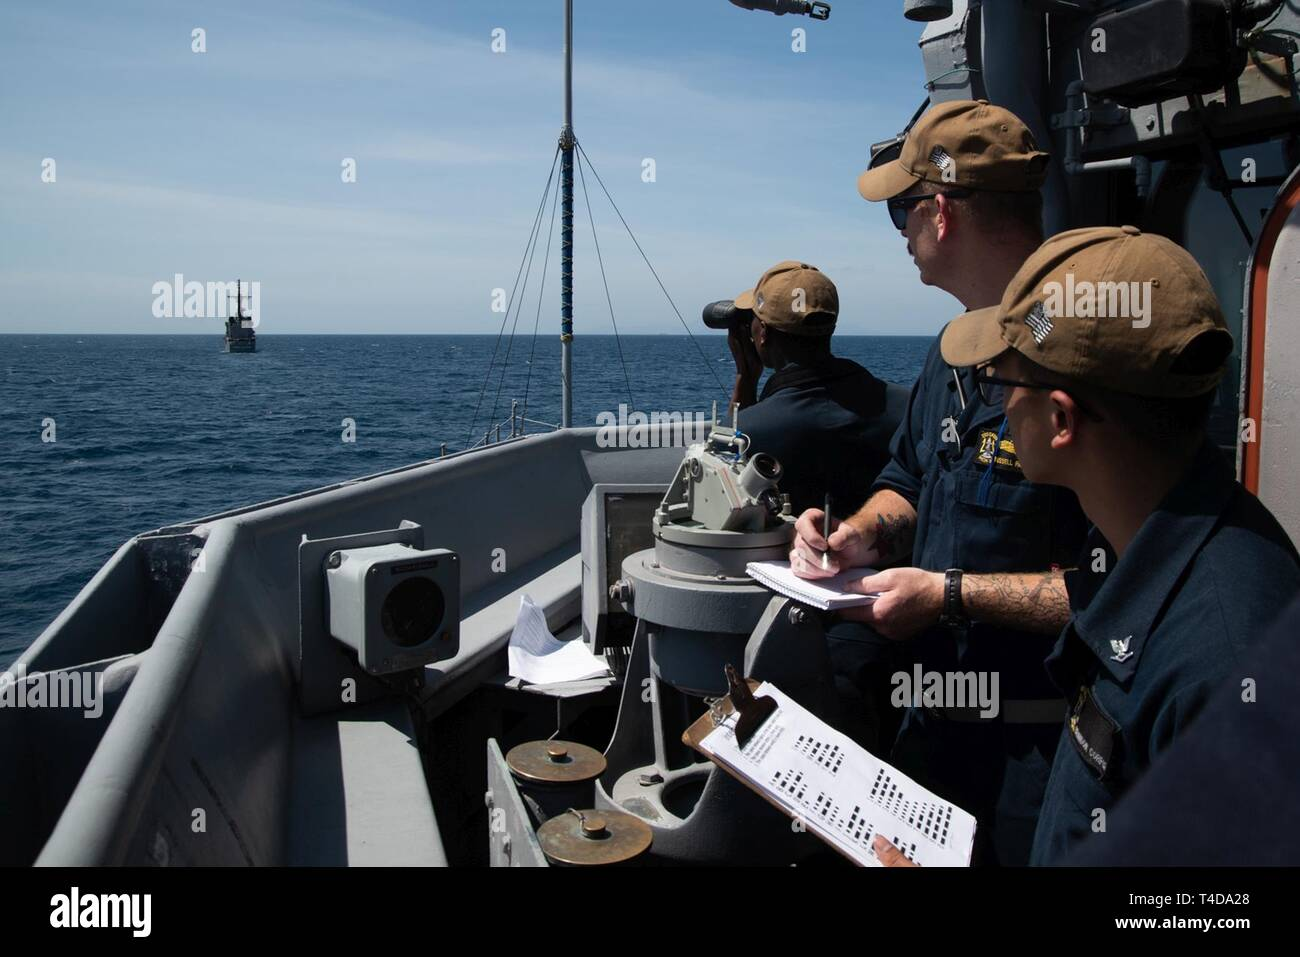 SOUTH CHINA SEA (March 21, 2019) Sailors translate flashing-light Morse code received from Philippine Navy vessel BRP Ramon Alcaraz (FF 16) aboard the Avenger class mine countermeasures ship USS Chief (MCM 14) during a maritime cooperative activity. Chief, part of Mine Countermeasures Squadron 7, is operating in the Indo-Pacific region to enhance interoperability with partners and serve as a ready-response platform for contingency operations. - Stock Image